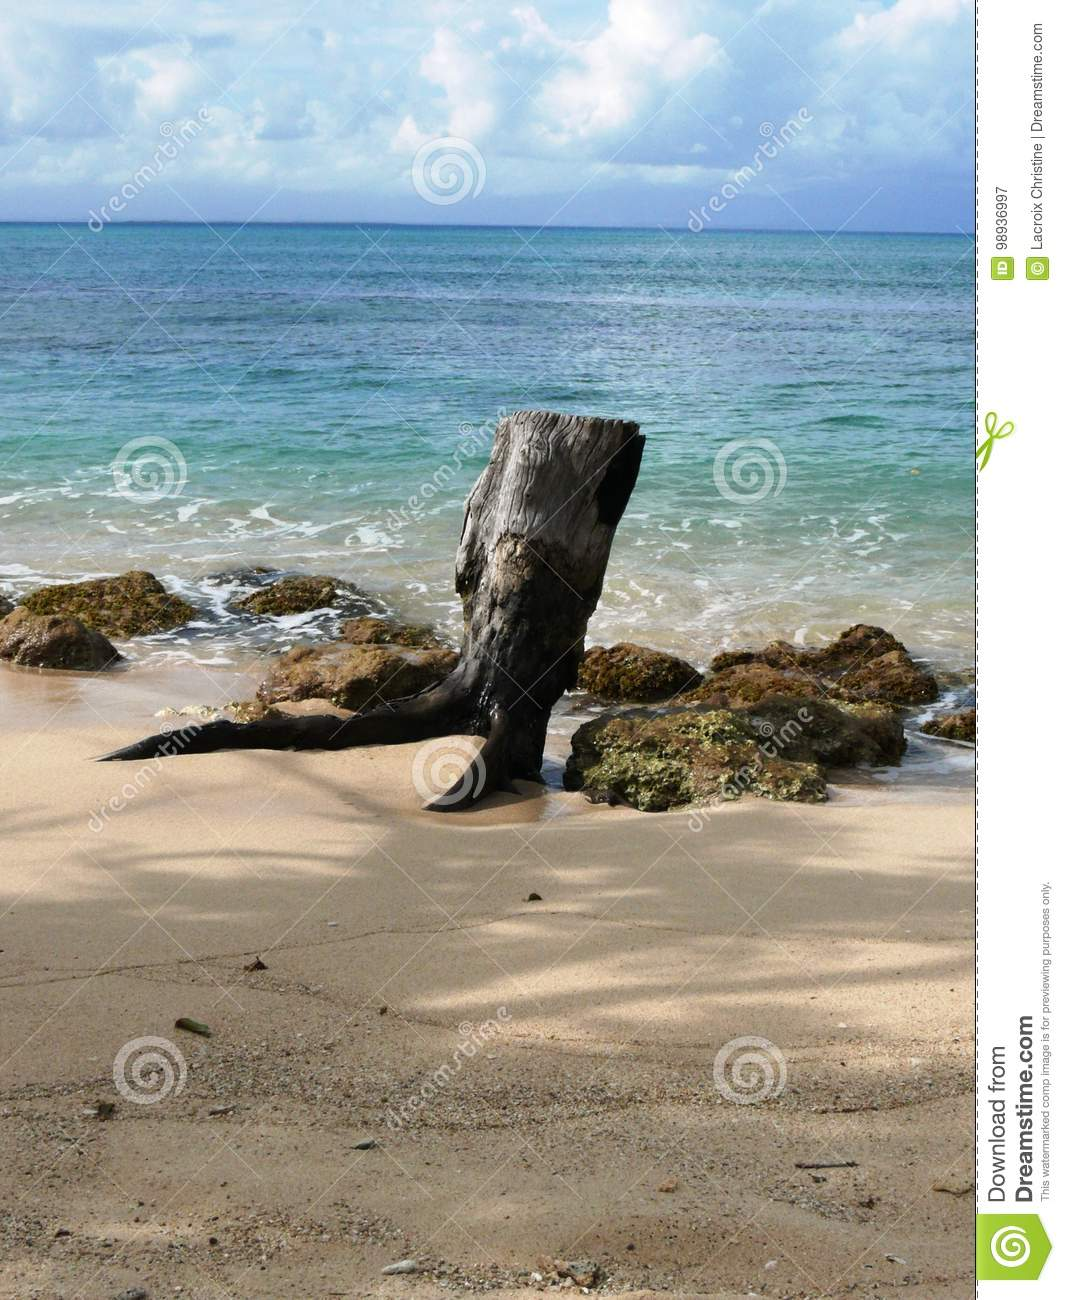 Guadeloupe Beach: Caribbean Beach And Stranded Wood In Guadeloupe. Stock